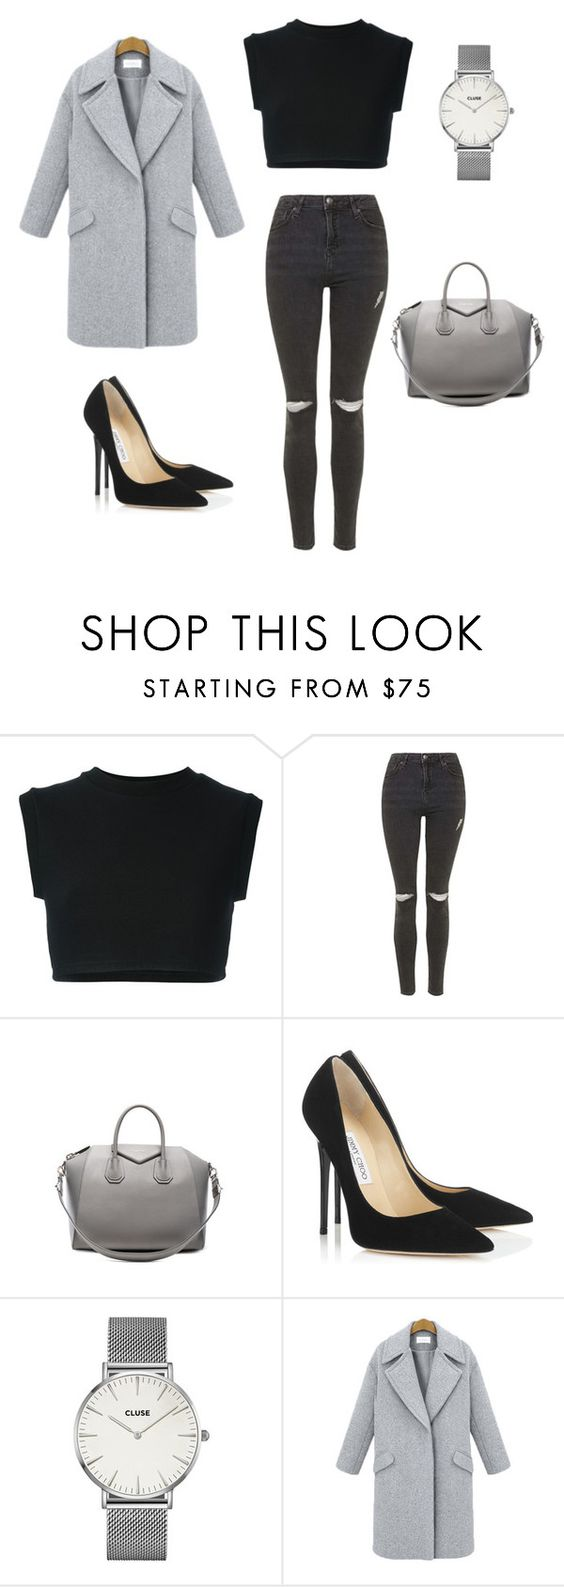 """The casual look with a pinch of fancy."" by laurentpadron ❤ liked on Polyvore featuring adidas Originals, Topshop, Givenchy and Jimmy Choo"